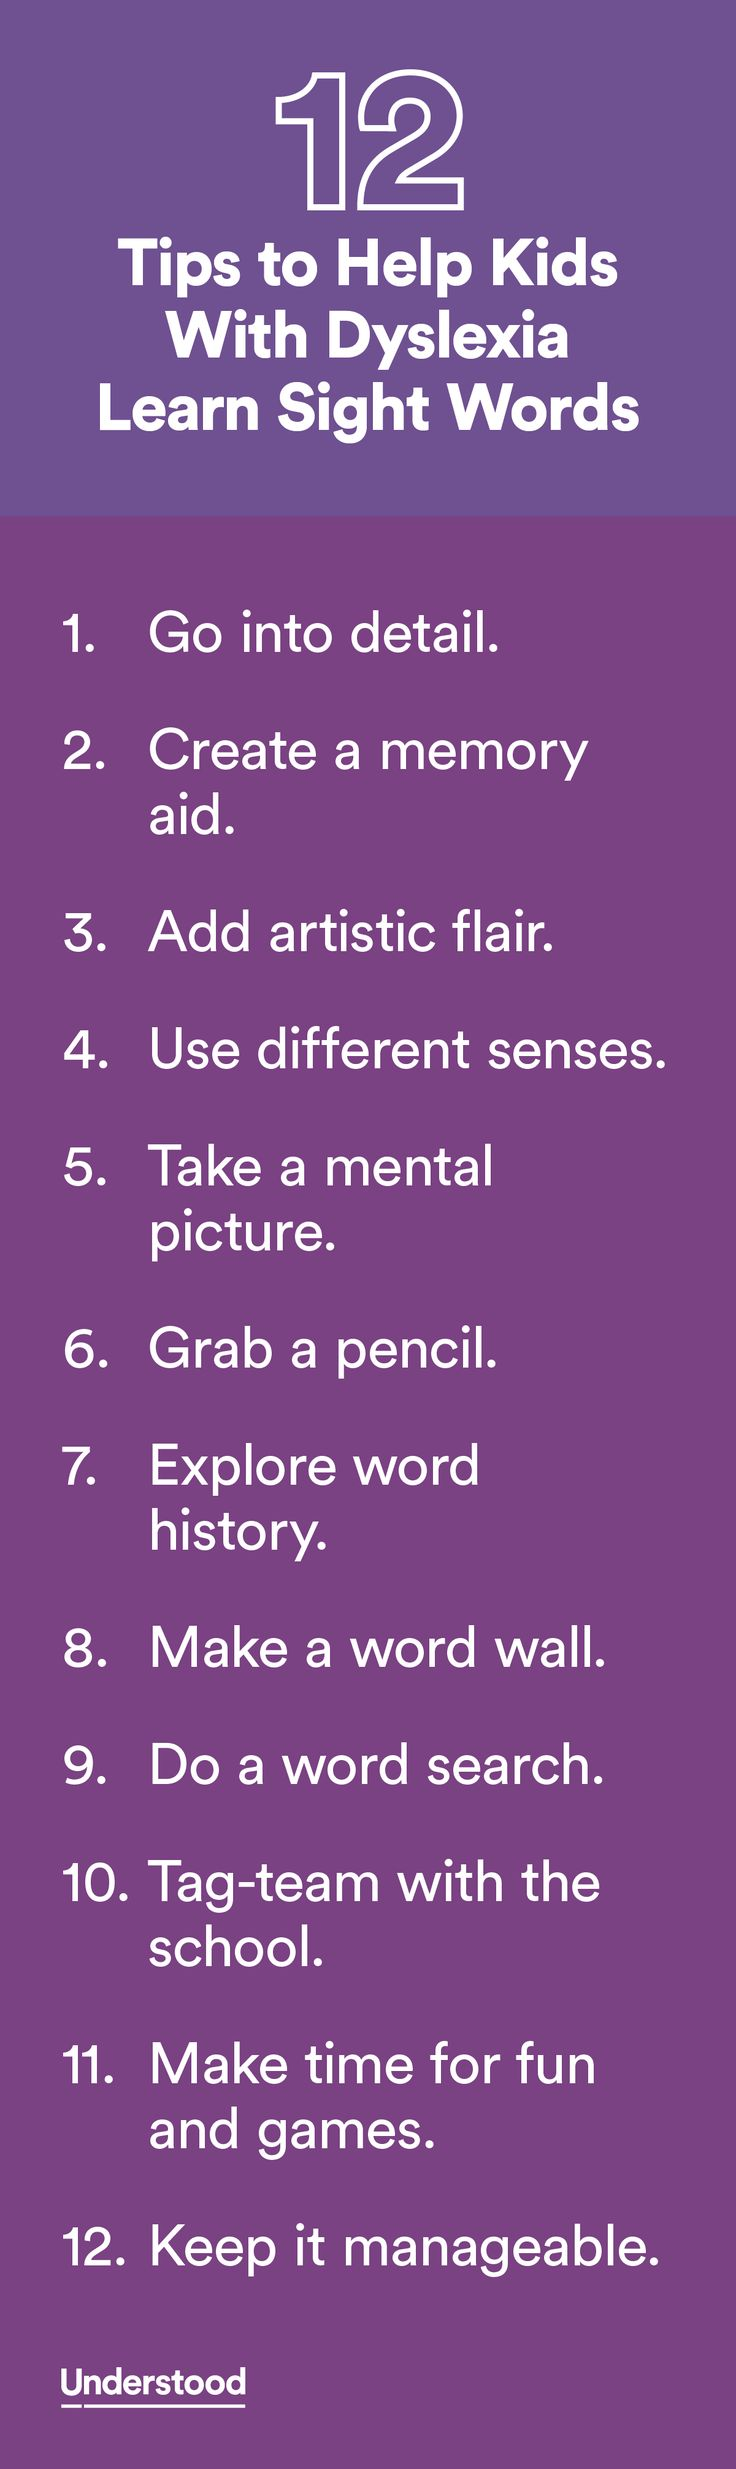 Kids with dyslexia can have extra difficulty learning sight words. Some of these words don't follow standard spelling rules, so they're not decodable. Others appear so often that kids have to recognize them quickly to be fluent readers. These tips can make learning sight words easier.